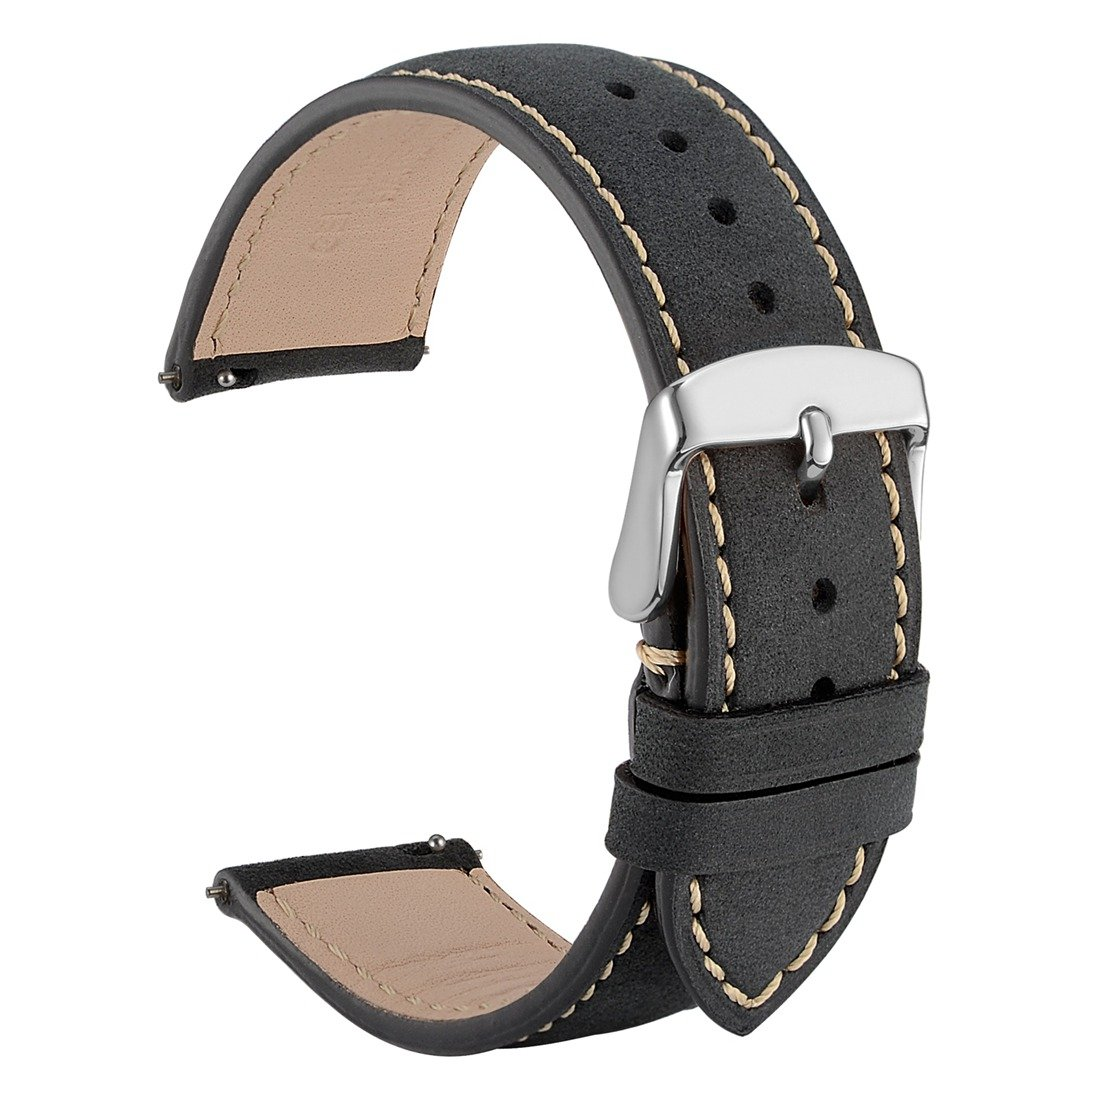 WOCCI 18mm Watch Band Quick Release - Suede Vintage Leather Watch Strap Black with Silver Buckle by WOCCI